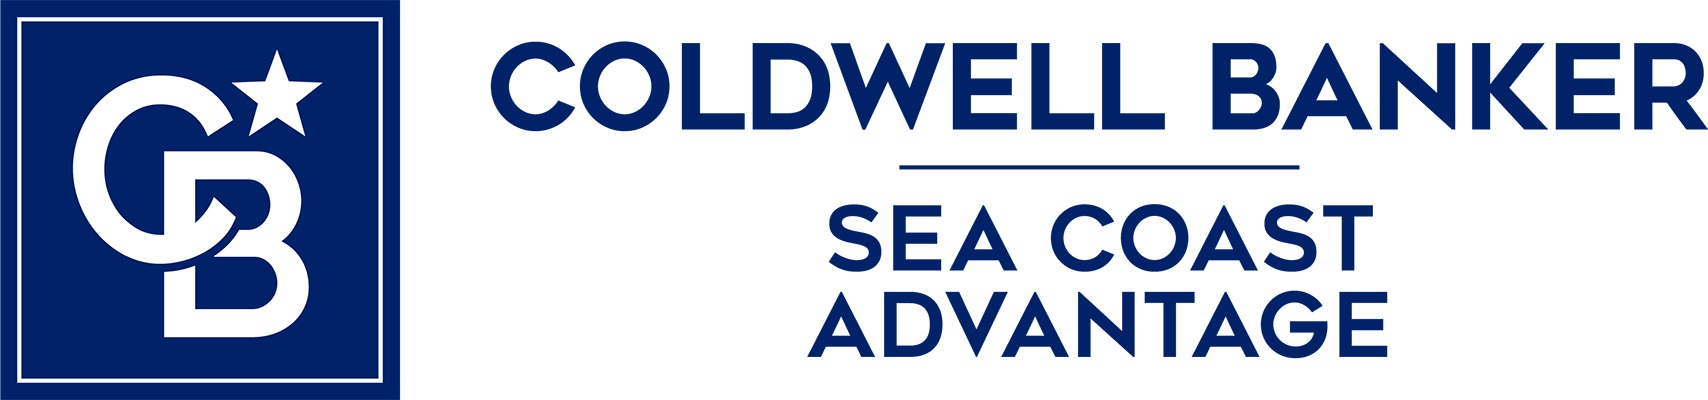 Katie Barbato - Coldwell Banker Sea Coast Advantage Realty Logo